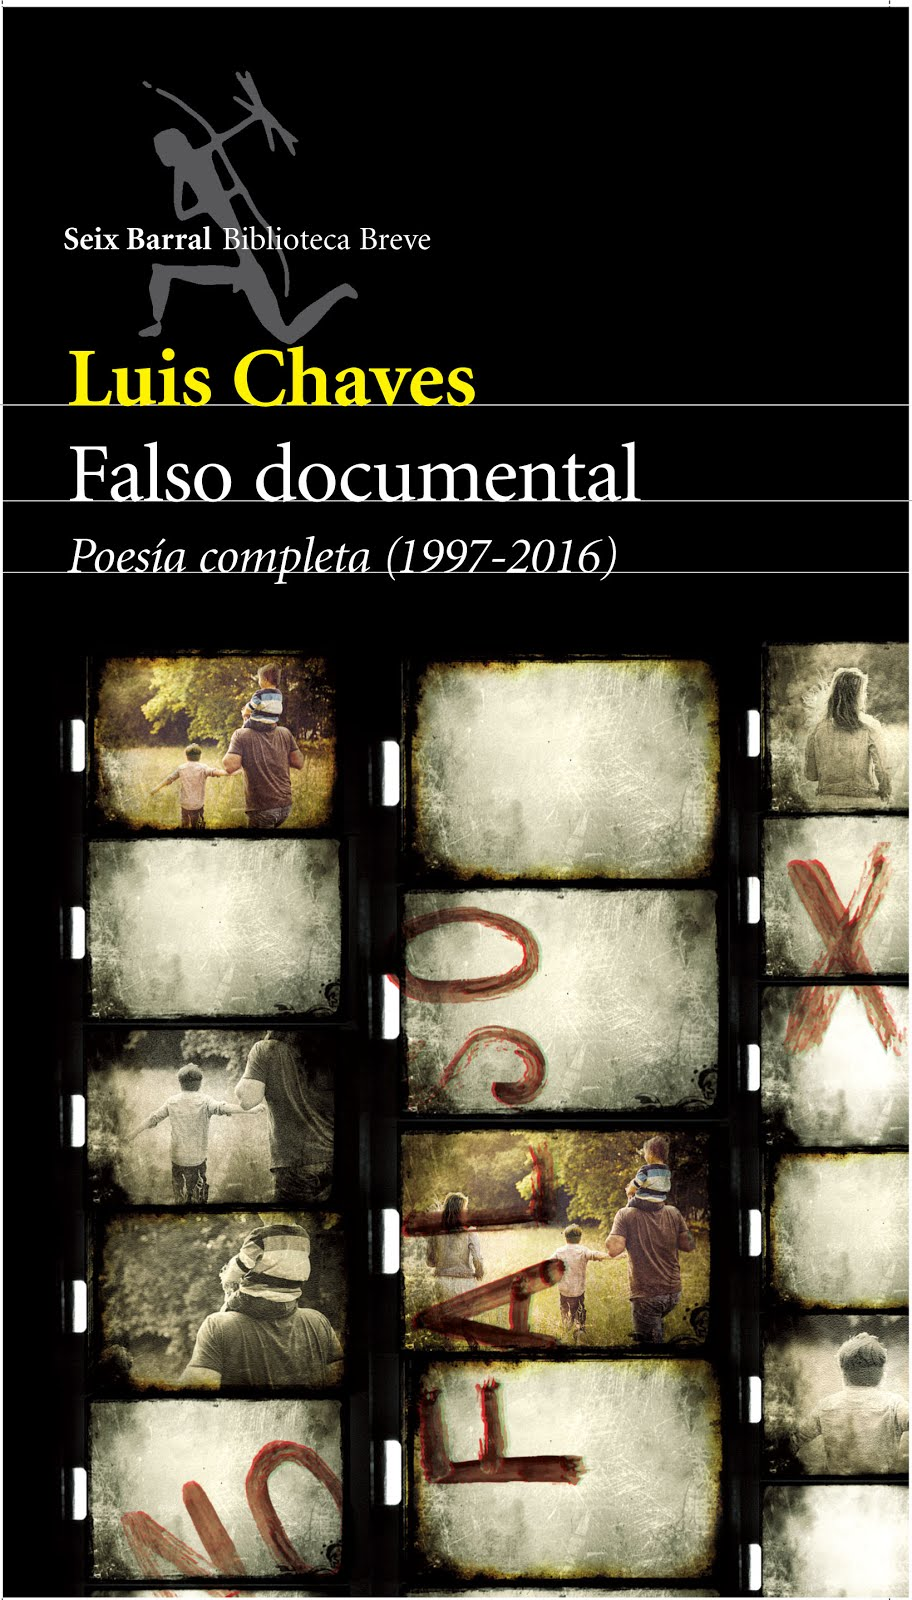 falso documental (poesía completa 1997-2016) / seix barral / 2016